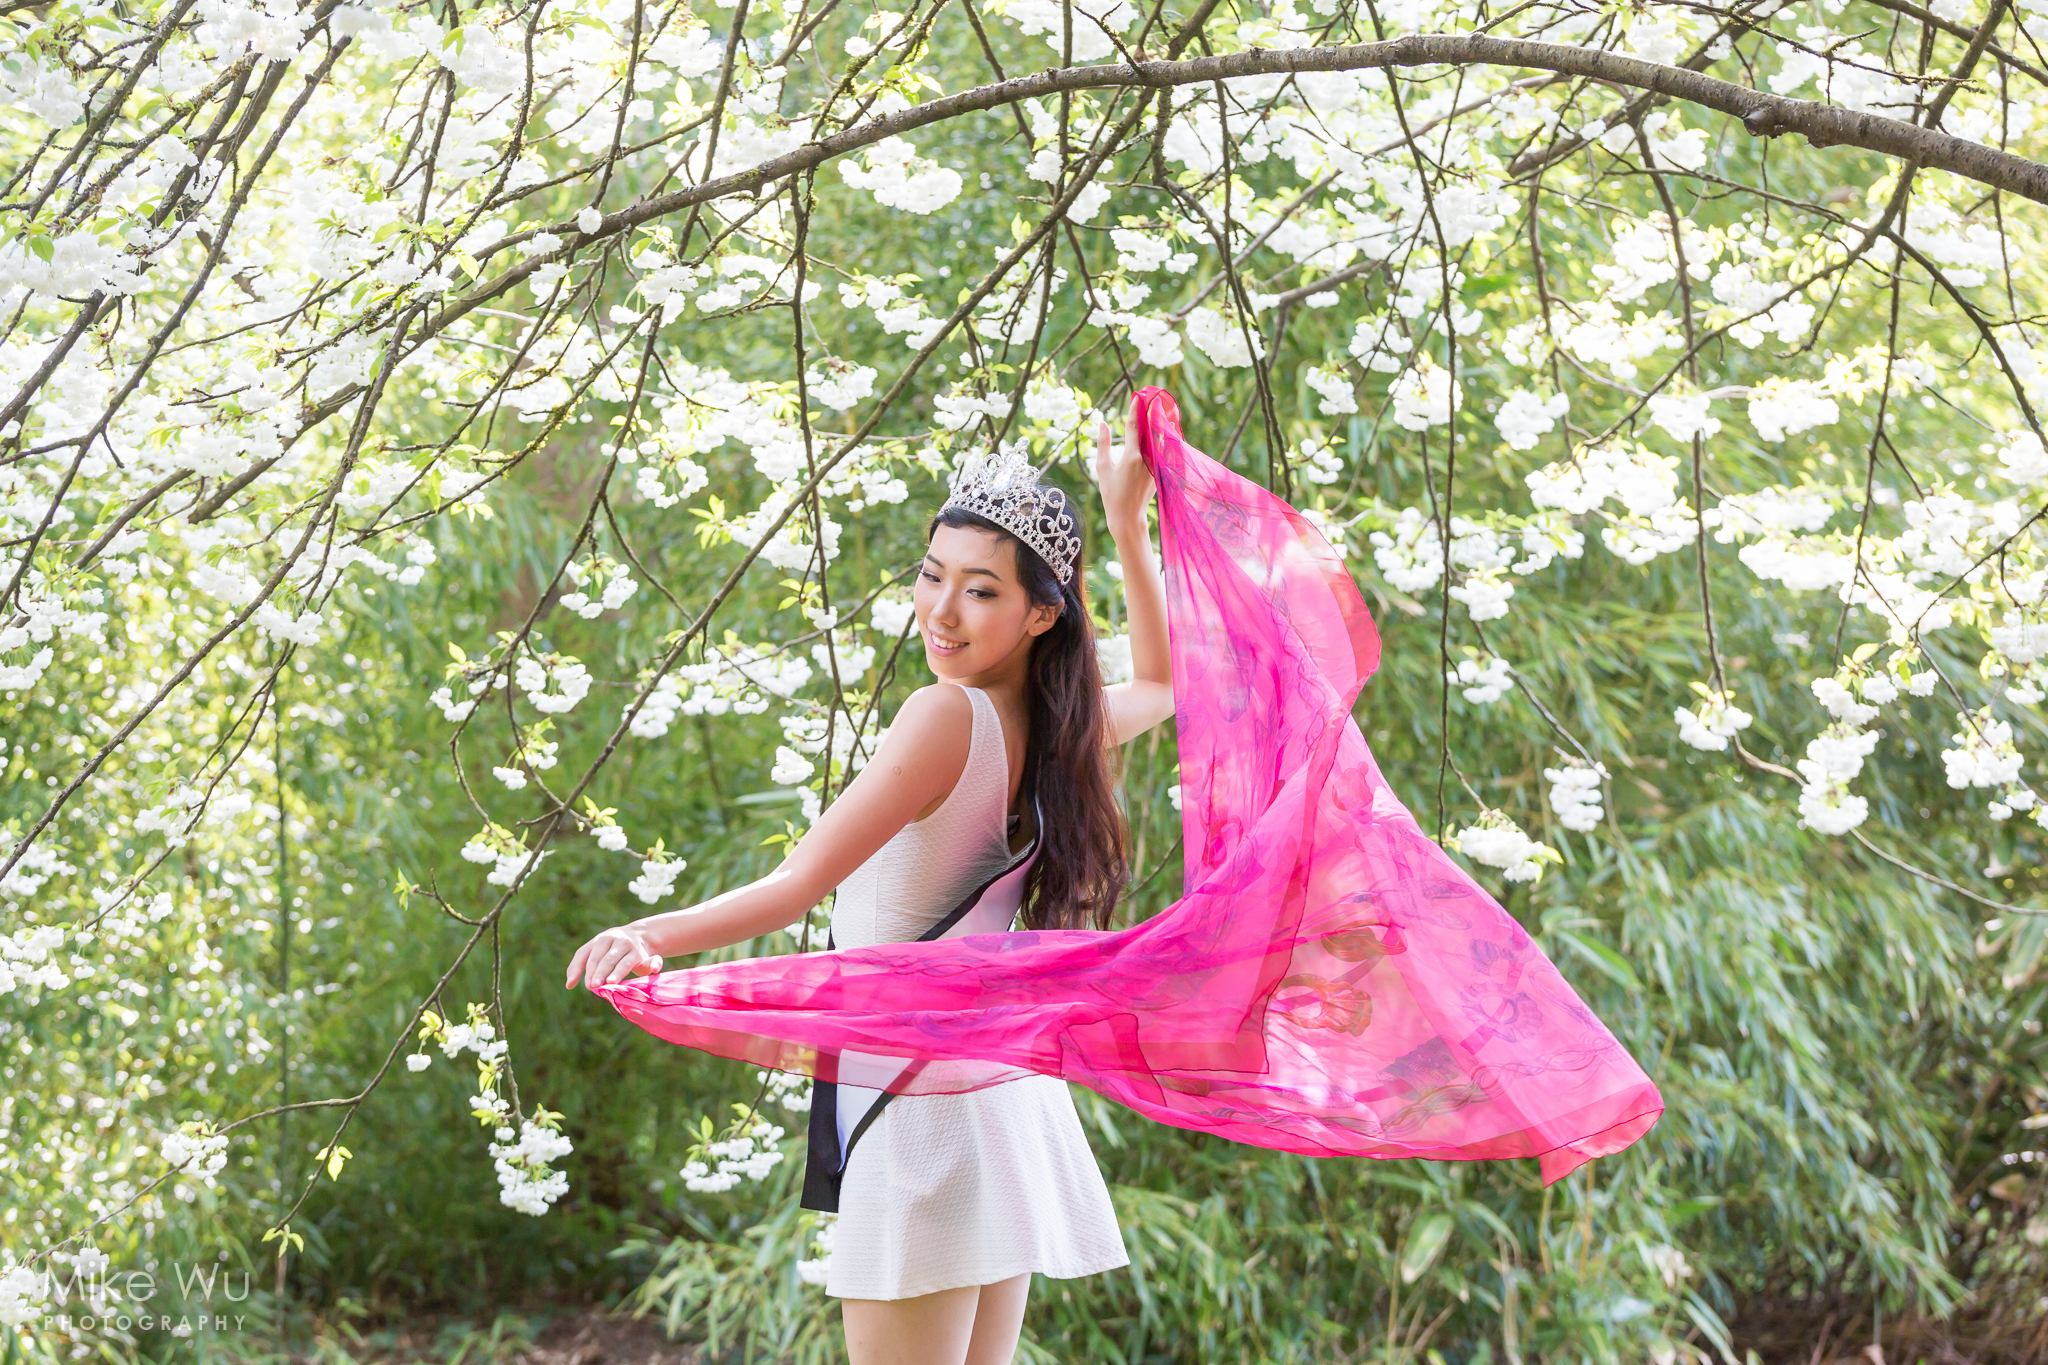 Vancouver Portrait Photographer Mike Wu Photography spring time flowy scarf natural asian beauty pageant winner ariel cao white dress sash flowers tree tiara